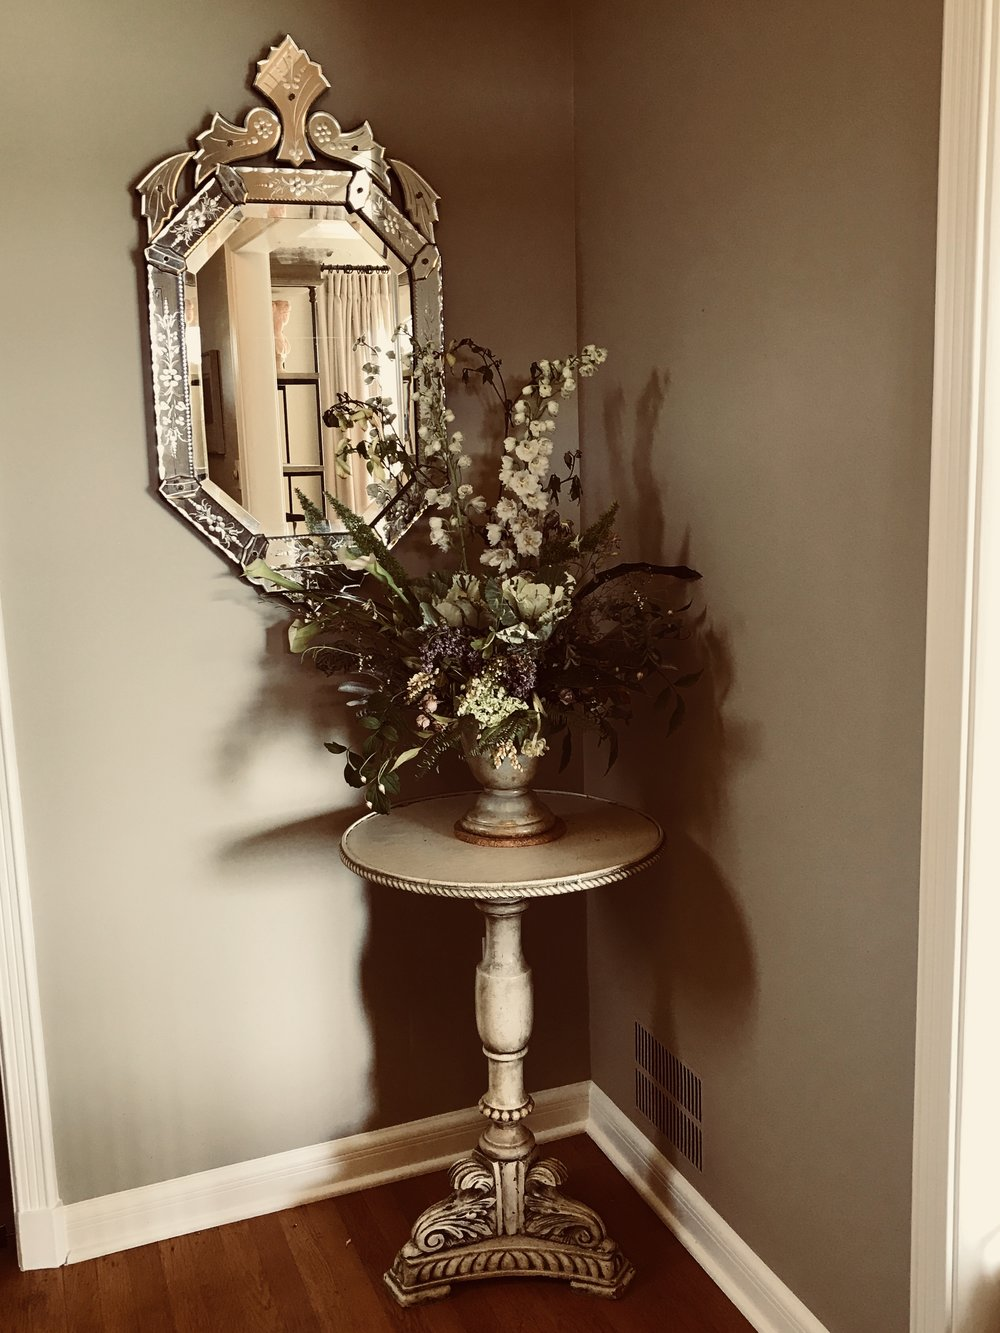 A Venetian mirror and antique Italian table welcome visitors